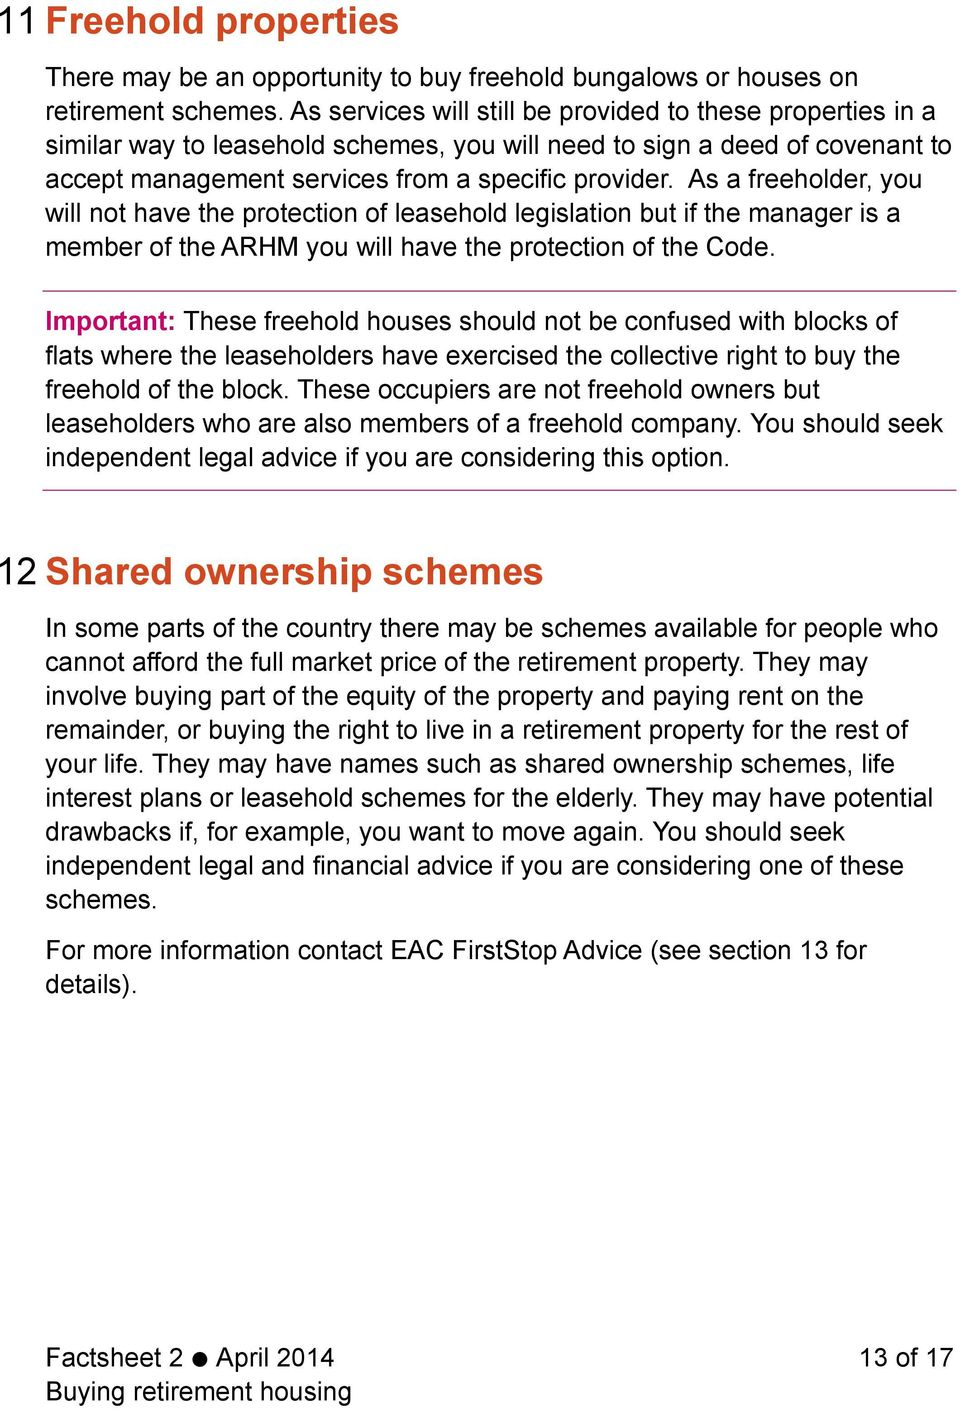 As a freeholder, you will not have the protection of leasehold legislation but if the manager is a member of the ARHM you will have the protection of the Code.